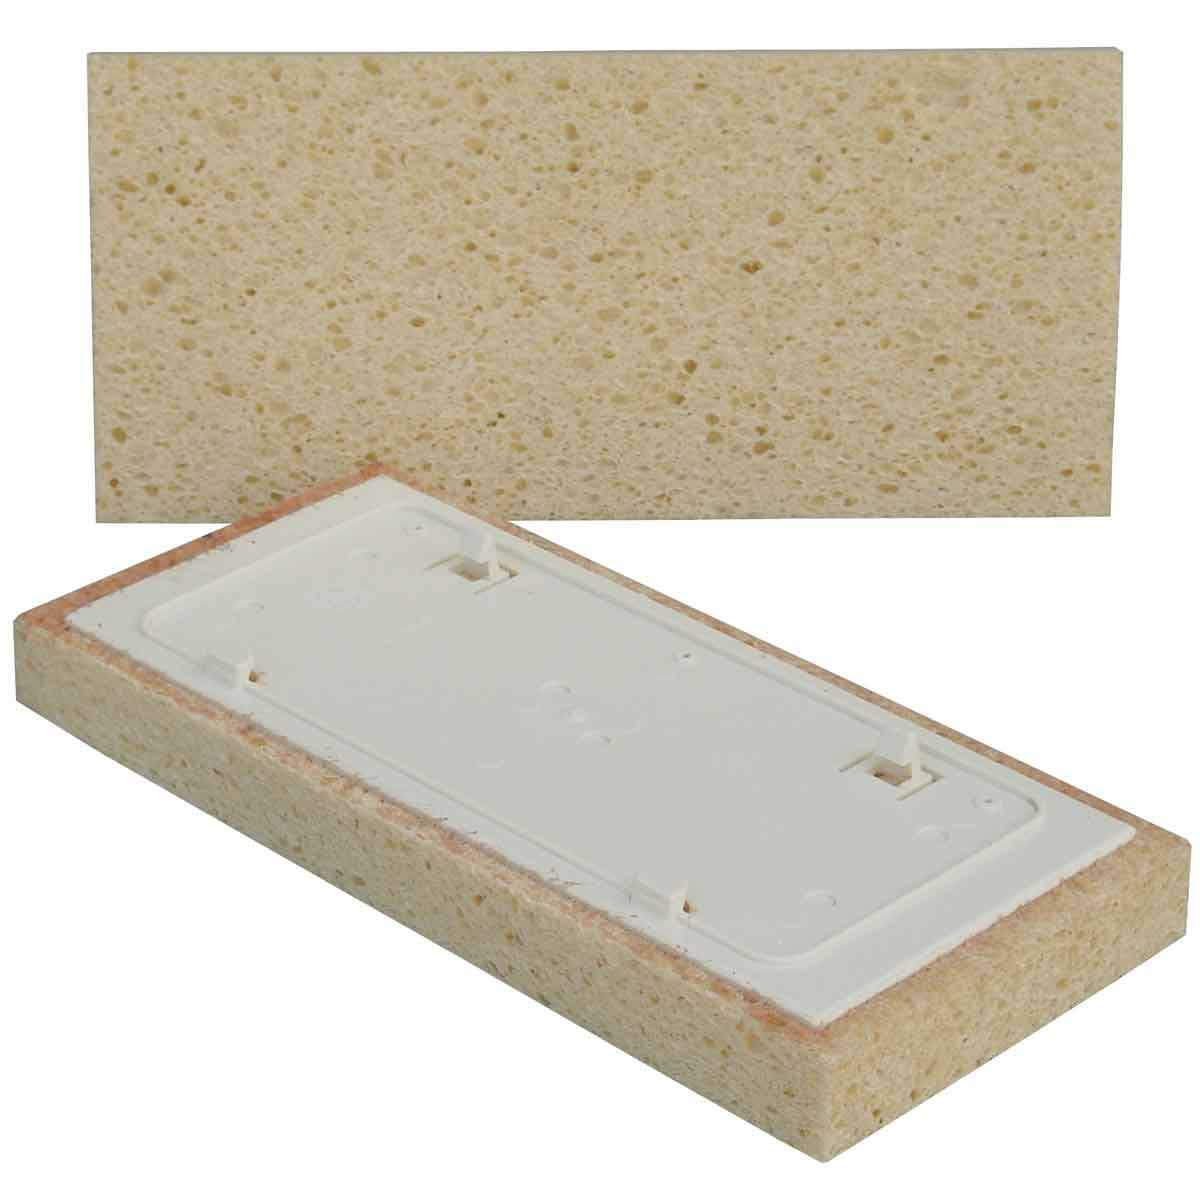 Repl Sponges Raimondi WBSMART Brown